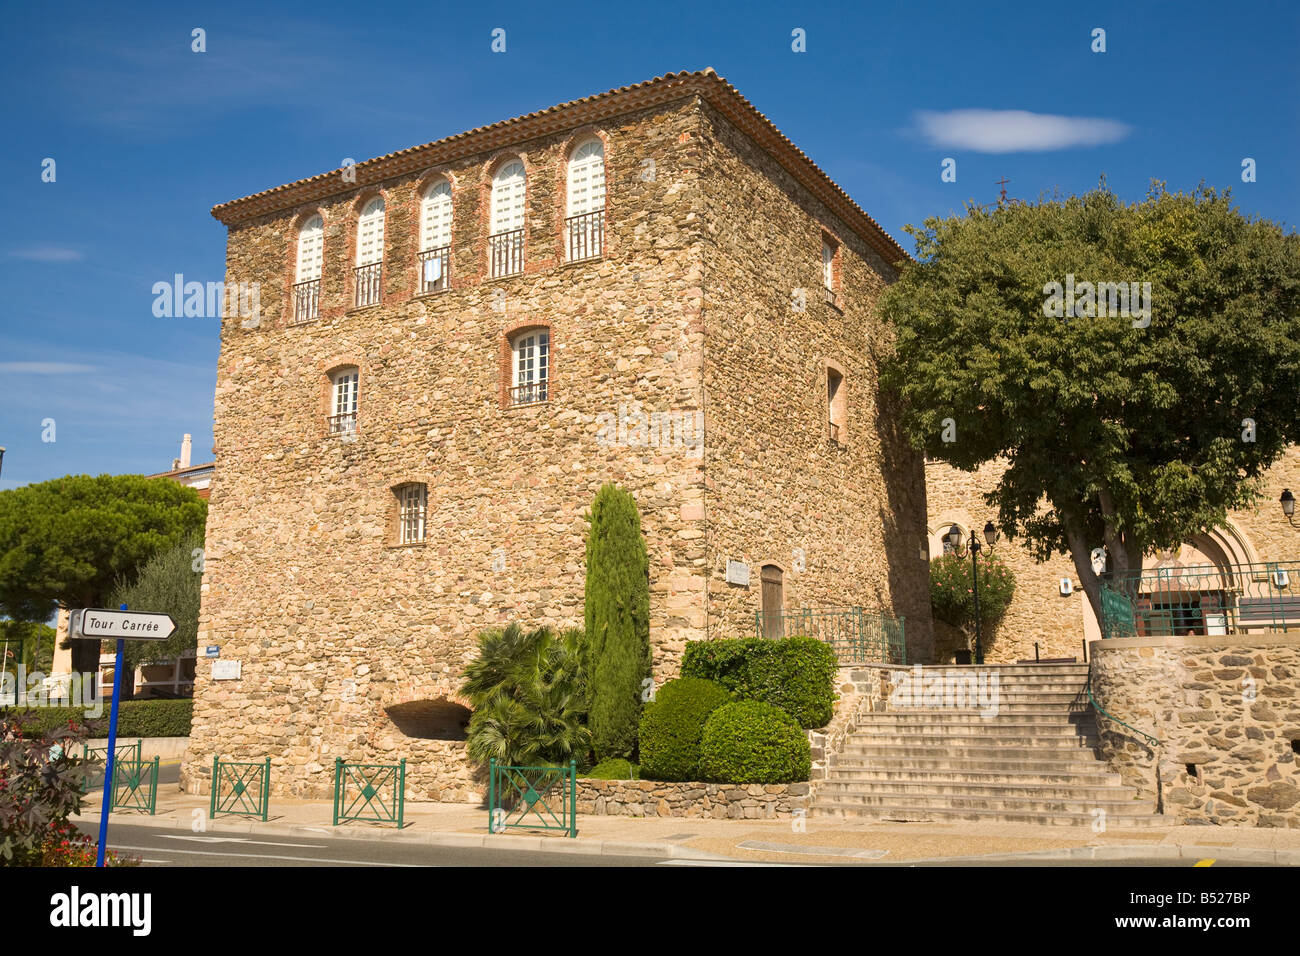 La Tour Carrée, landmark of Sainte-Maxime at the Cote d'Azur / Provence - Stock Image